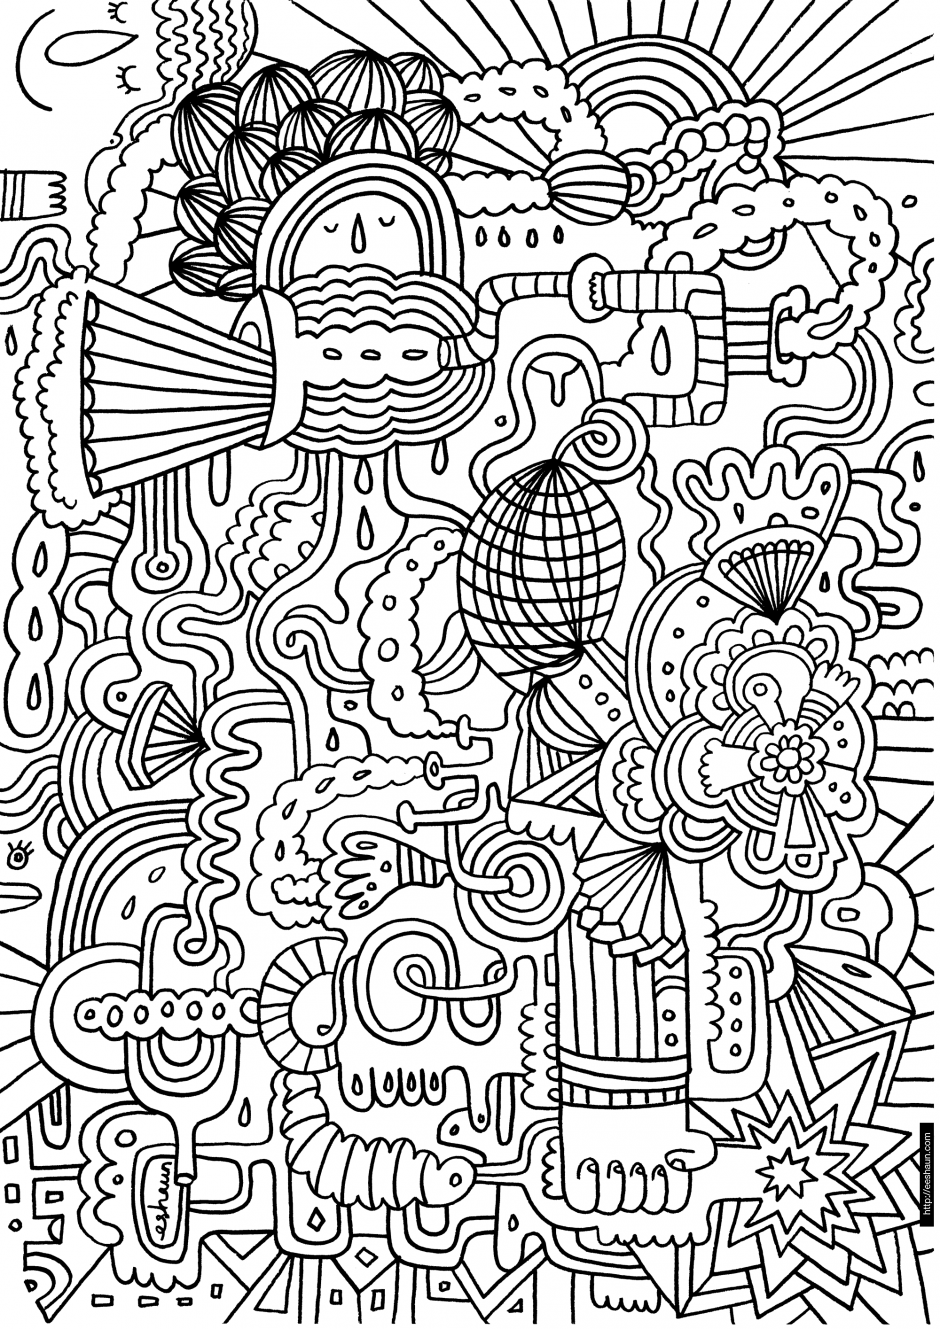 teenager-coloring-page-0001-q1